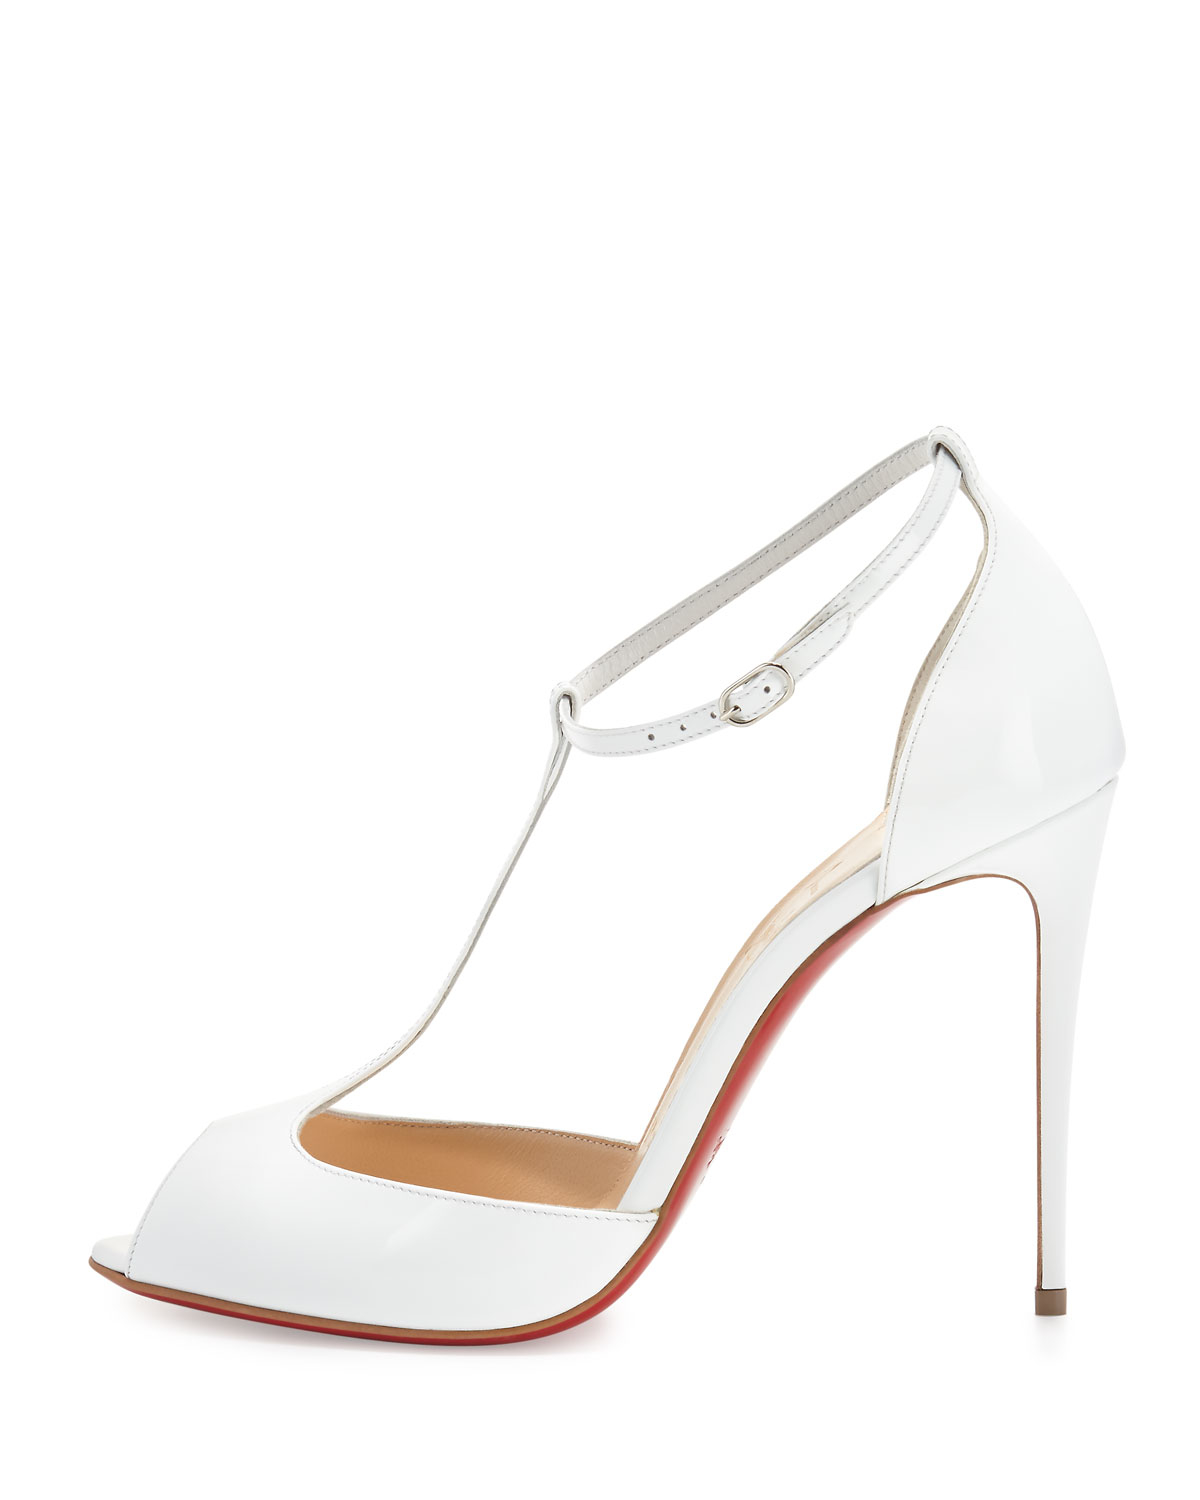 Christian louboutin Senora Patent-Leather Sandals in White | Lyst